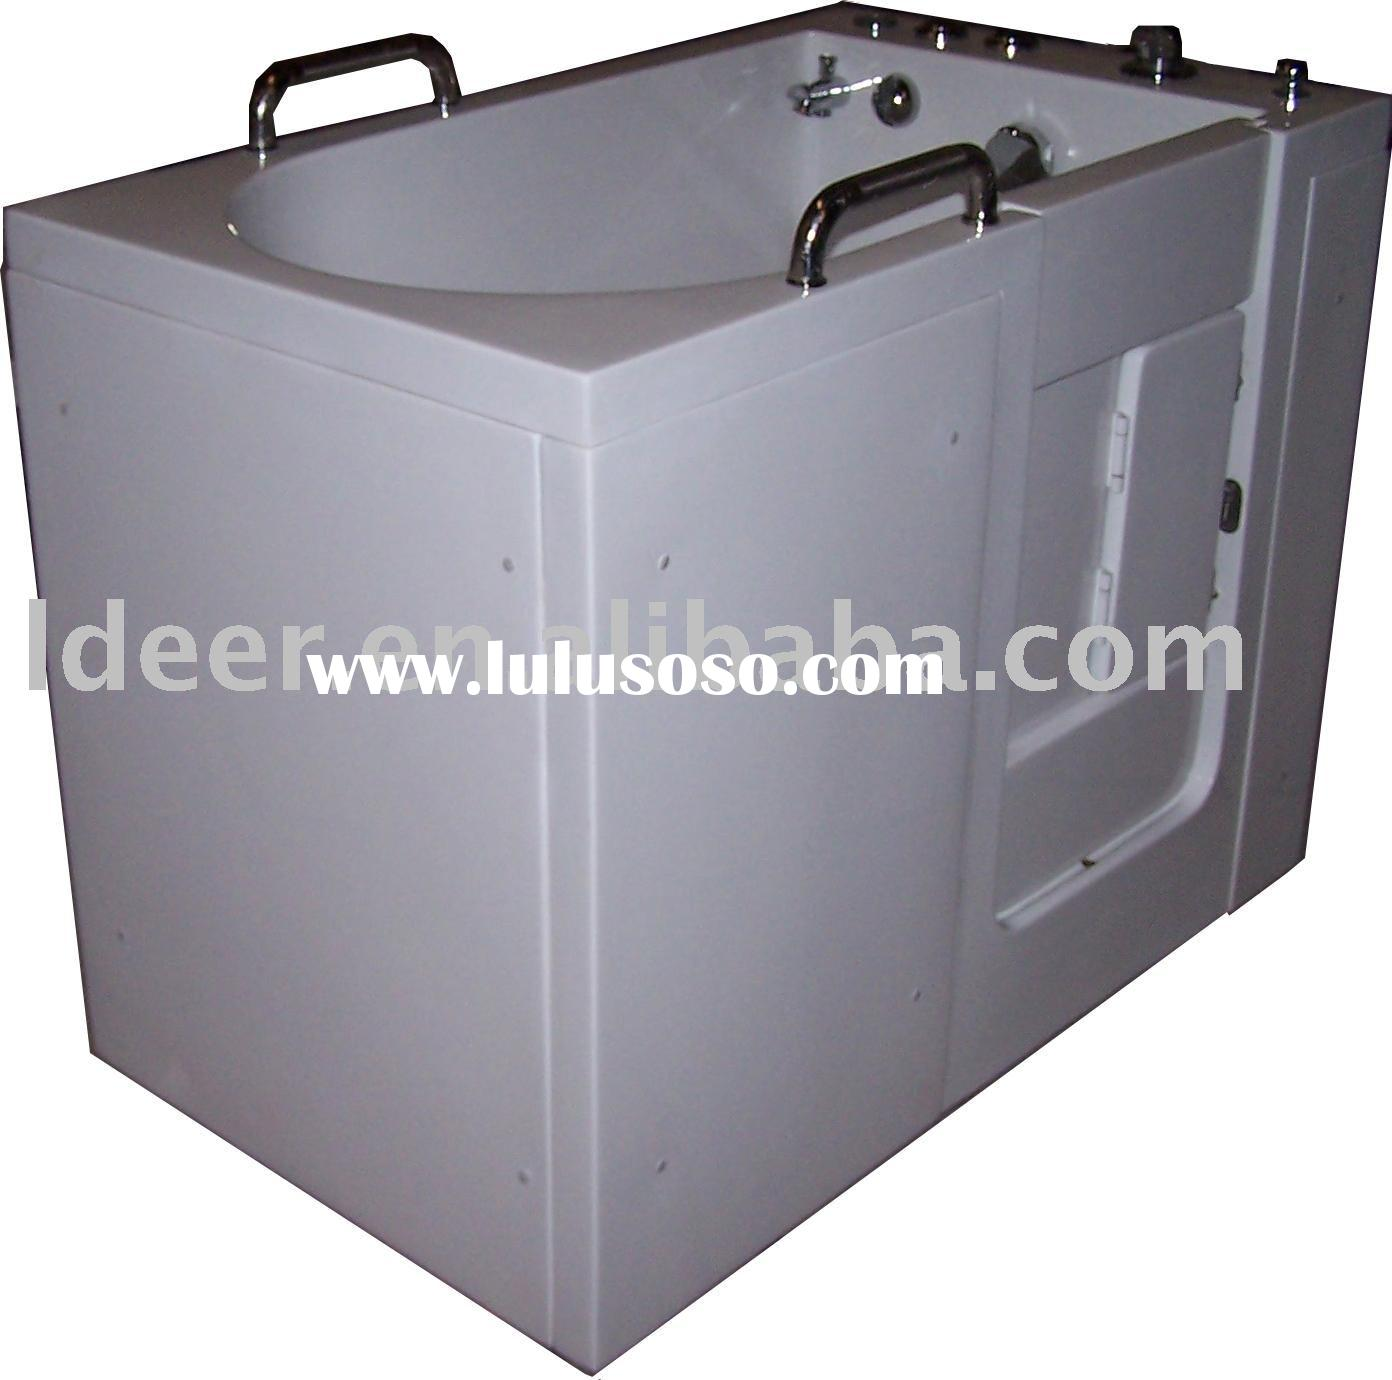 Bathtubs For Disabled